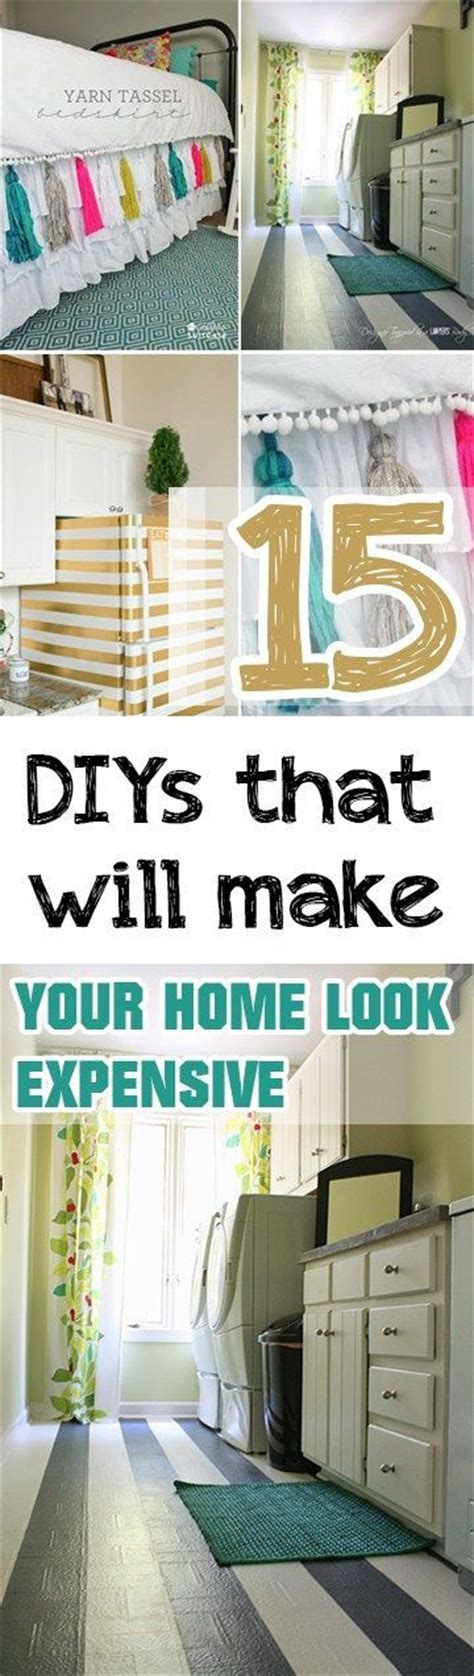 diy home improvement hacks 38678 best diy tips tricks images on pinterest